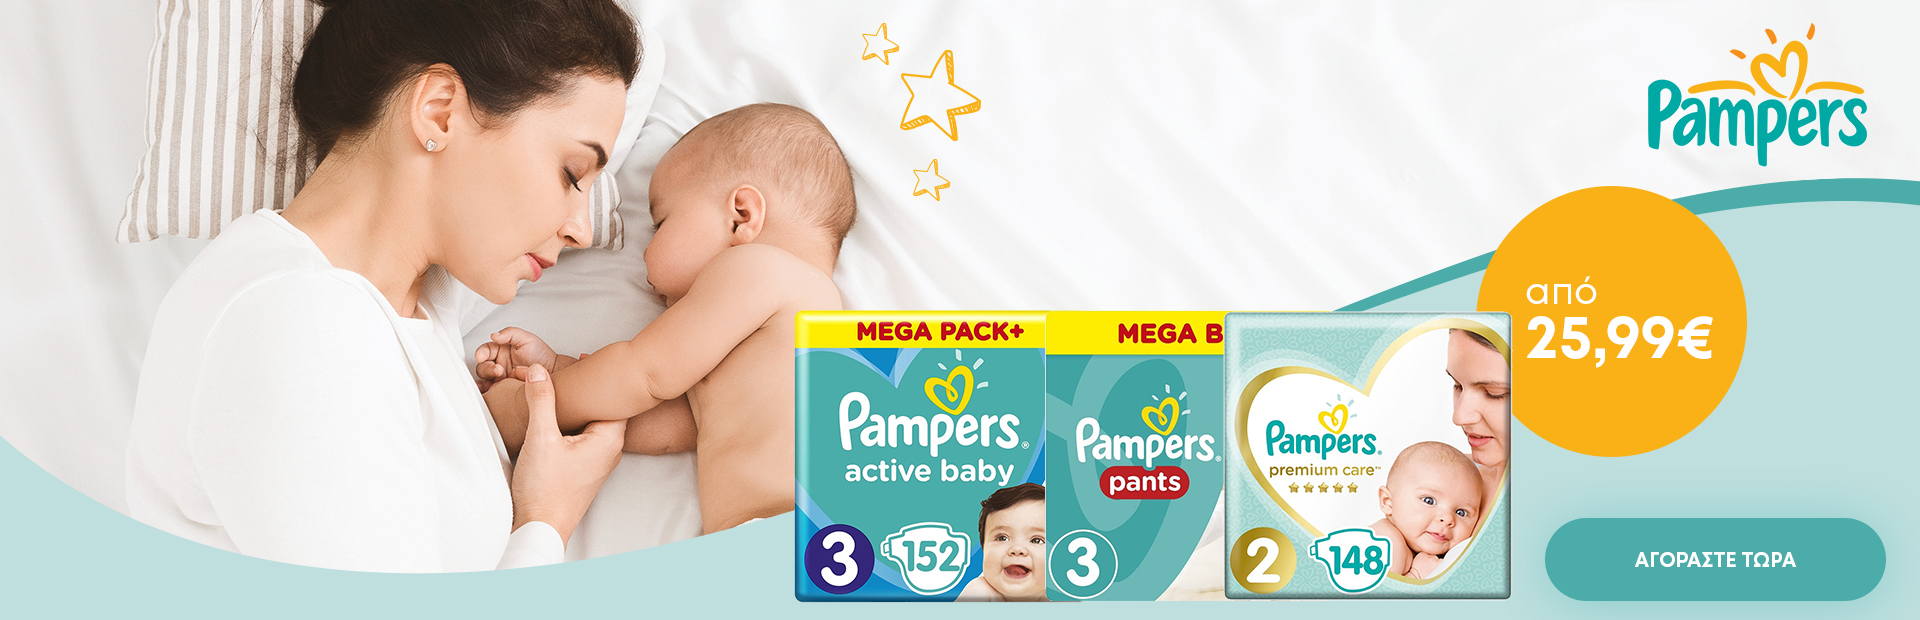 Pampers Mega Pack